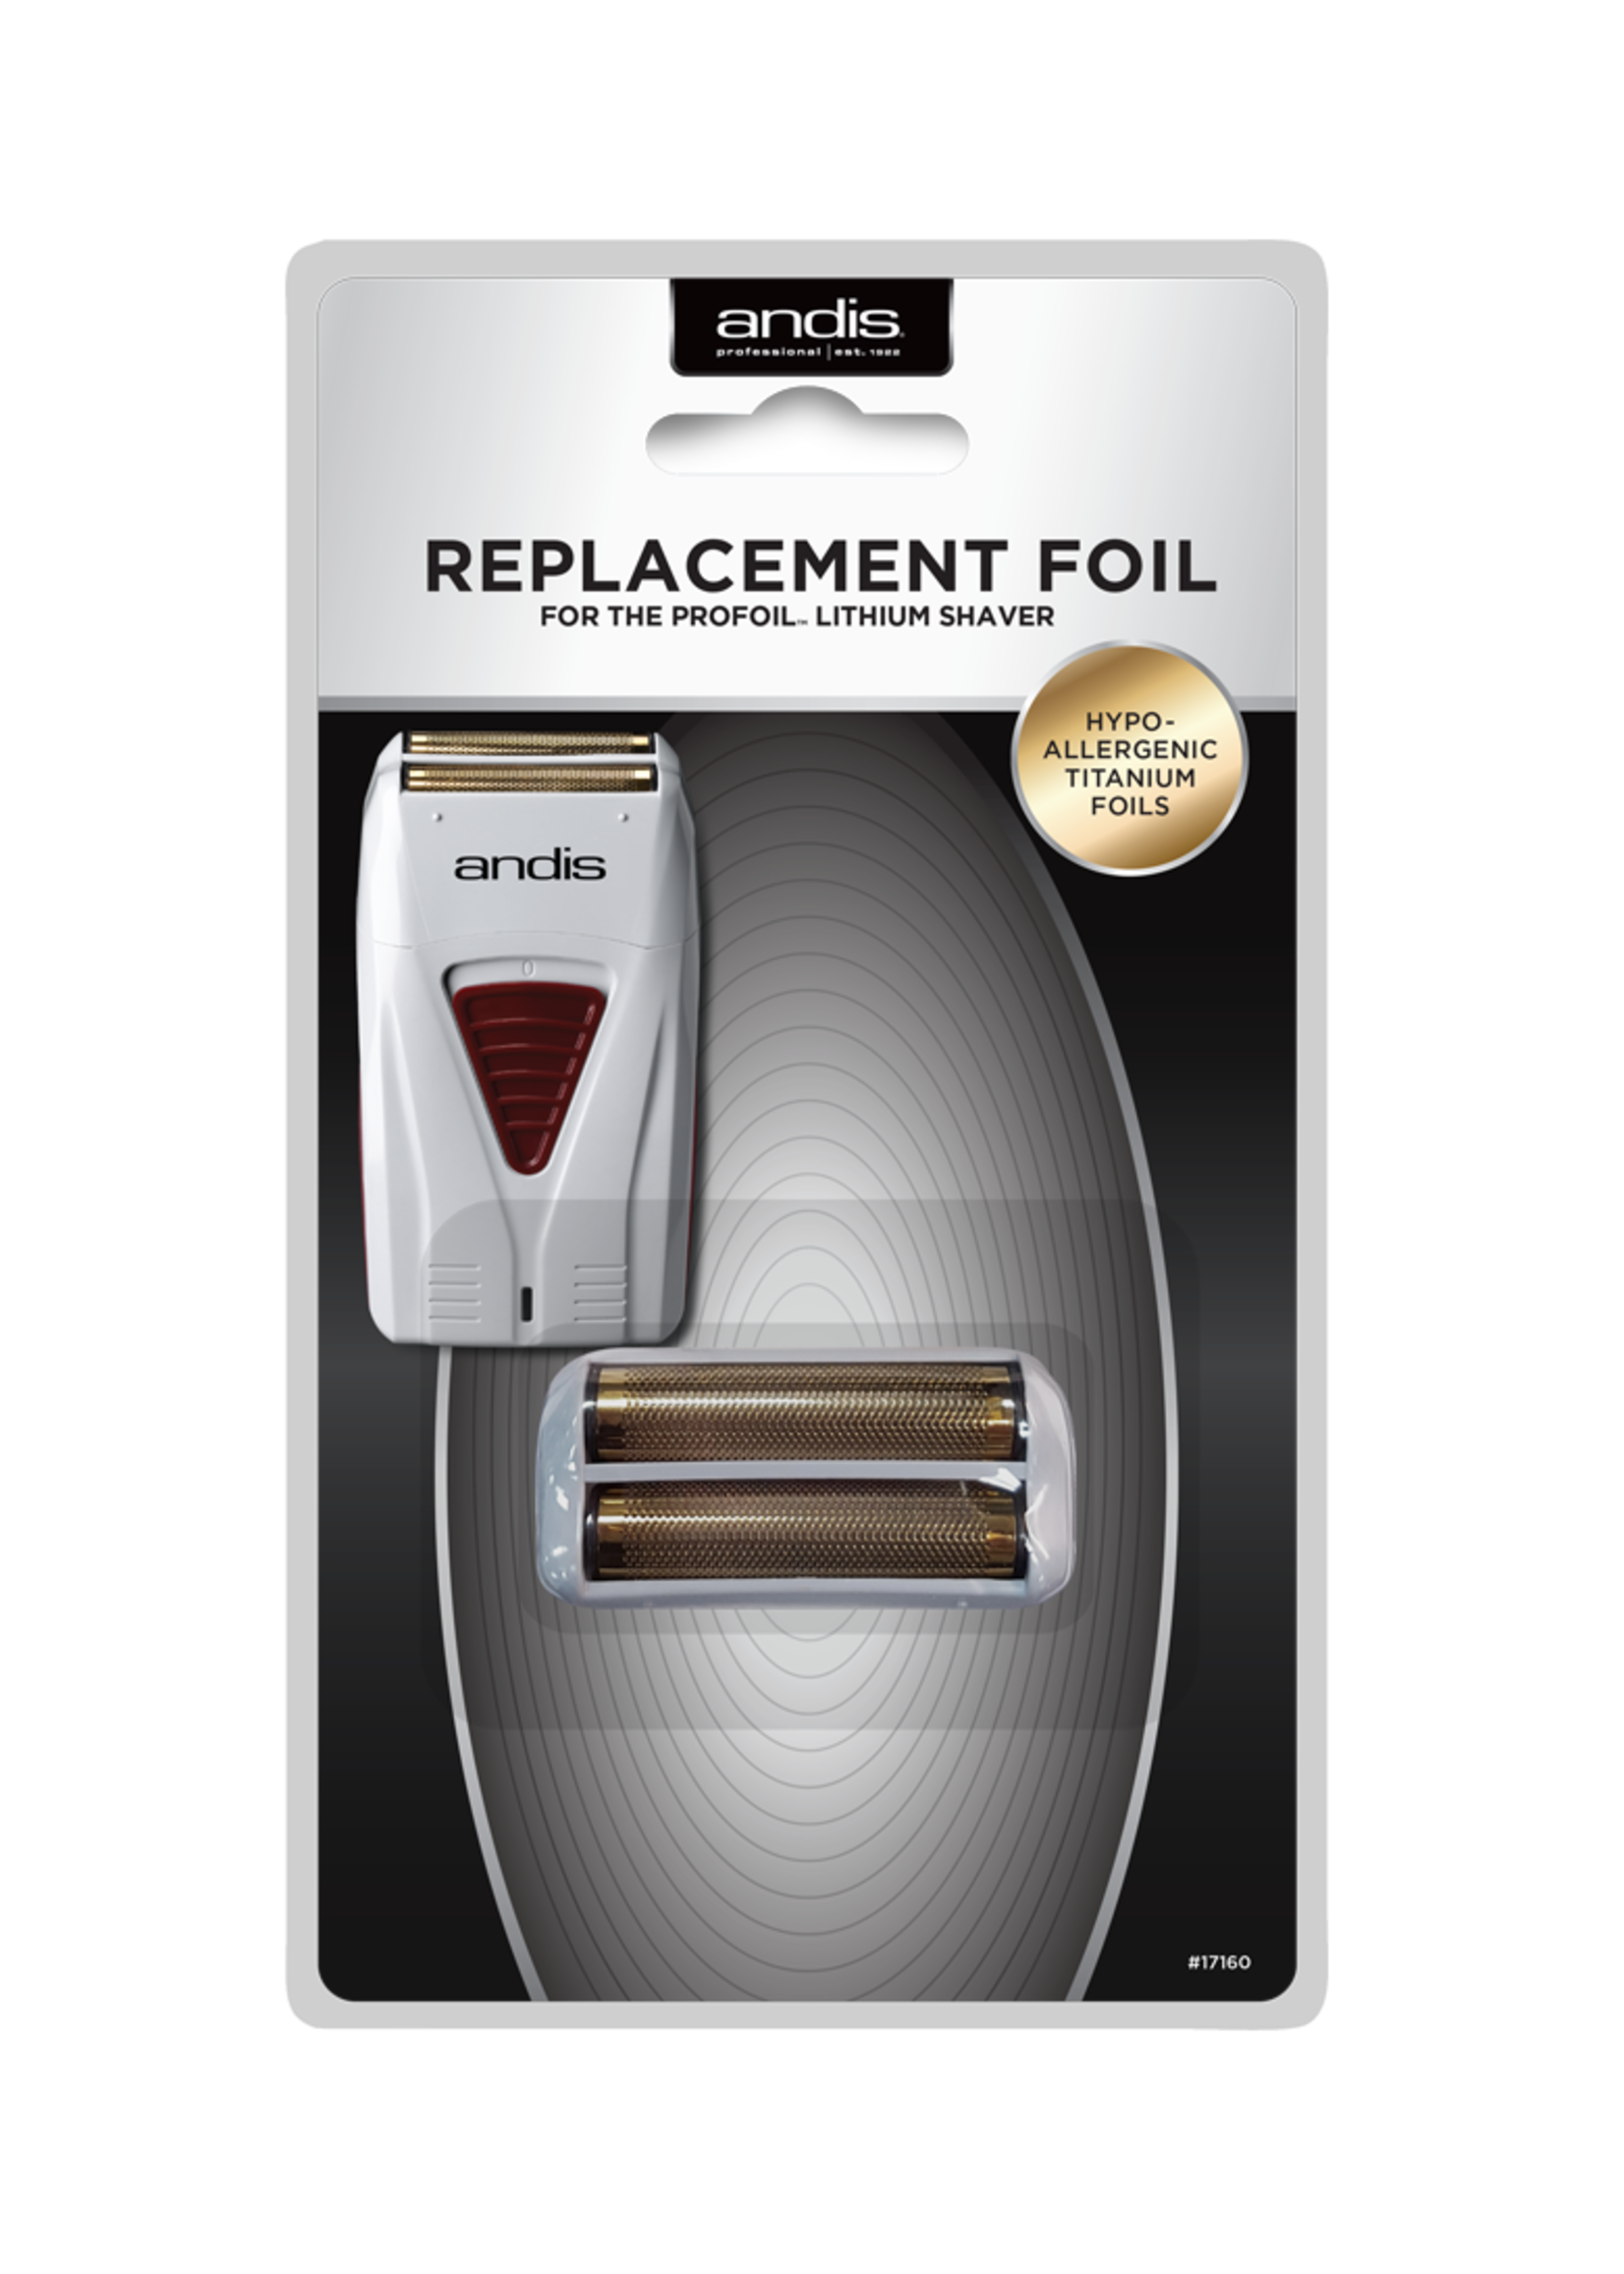 Andis Andis Profoil Shaver Replacement Foil Head